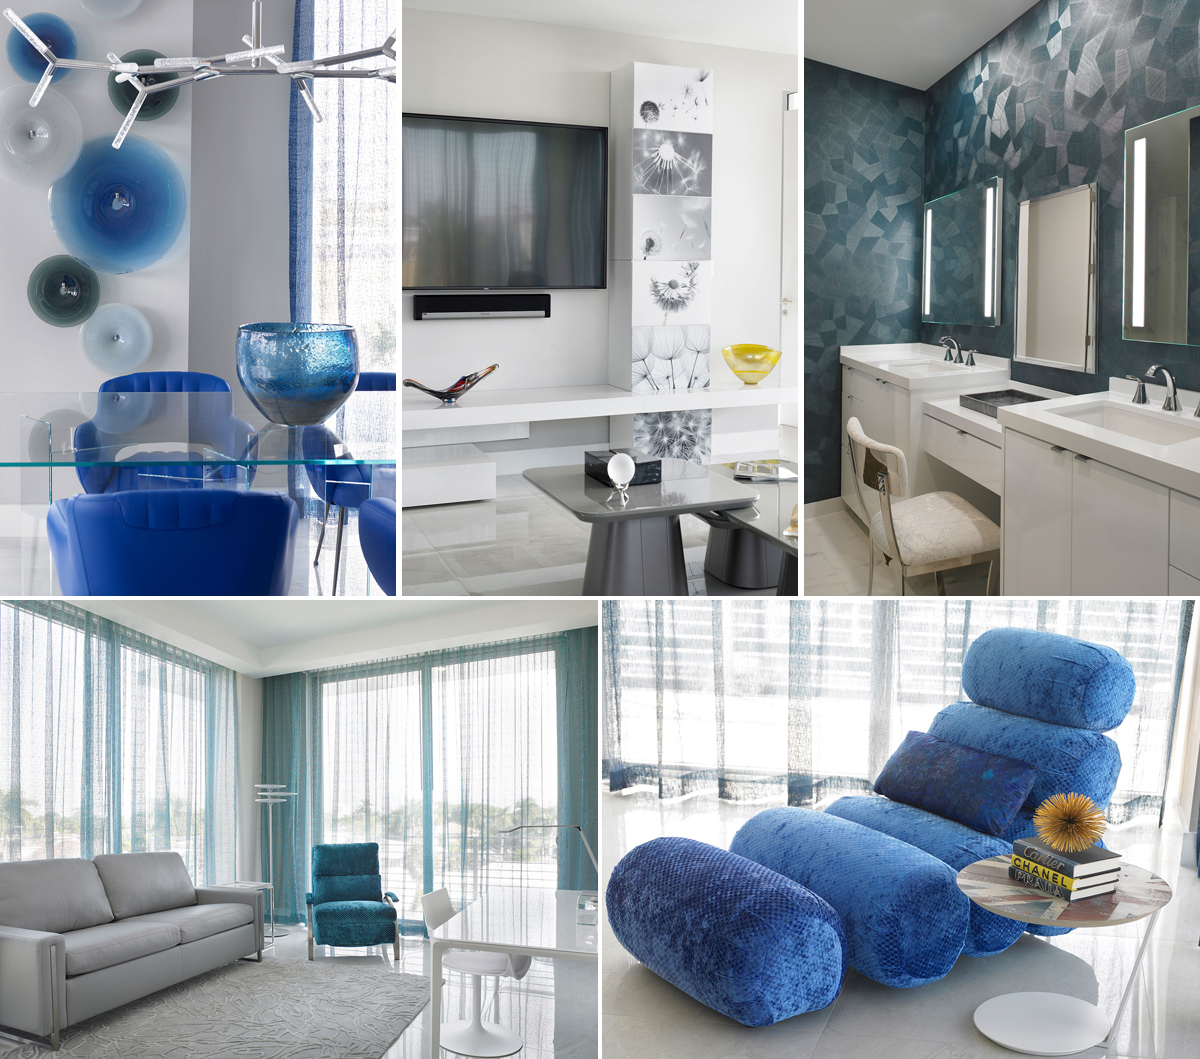 Interiors By SBI Interior Design Designer In South Florida International Luxury High-End Celebrity Homes Million Dollar Estates High-Rise Apartments Penthouses New York City Los Angeles Miami Hamptons Florida California Hawaii